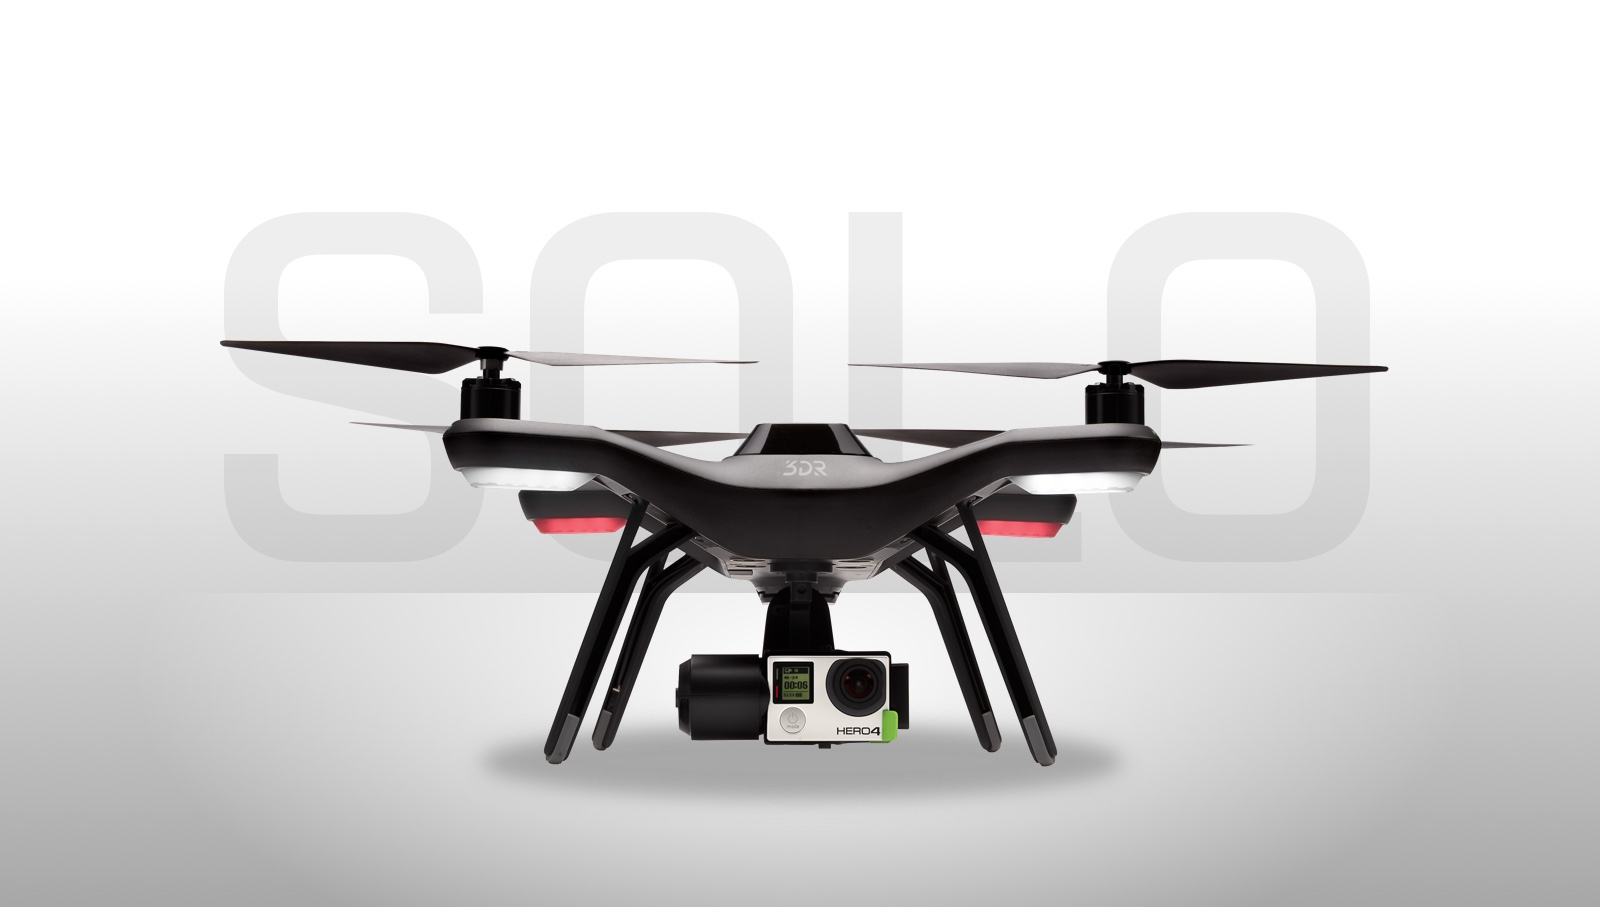 The world s smartest drone is also the easiest to fly. With features like  pushbutton flight and computer-assisted Smart Shots 4dcfc4ae10